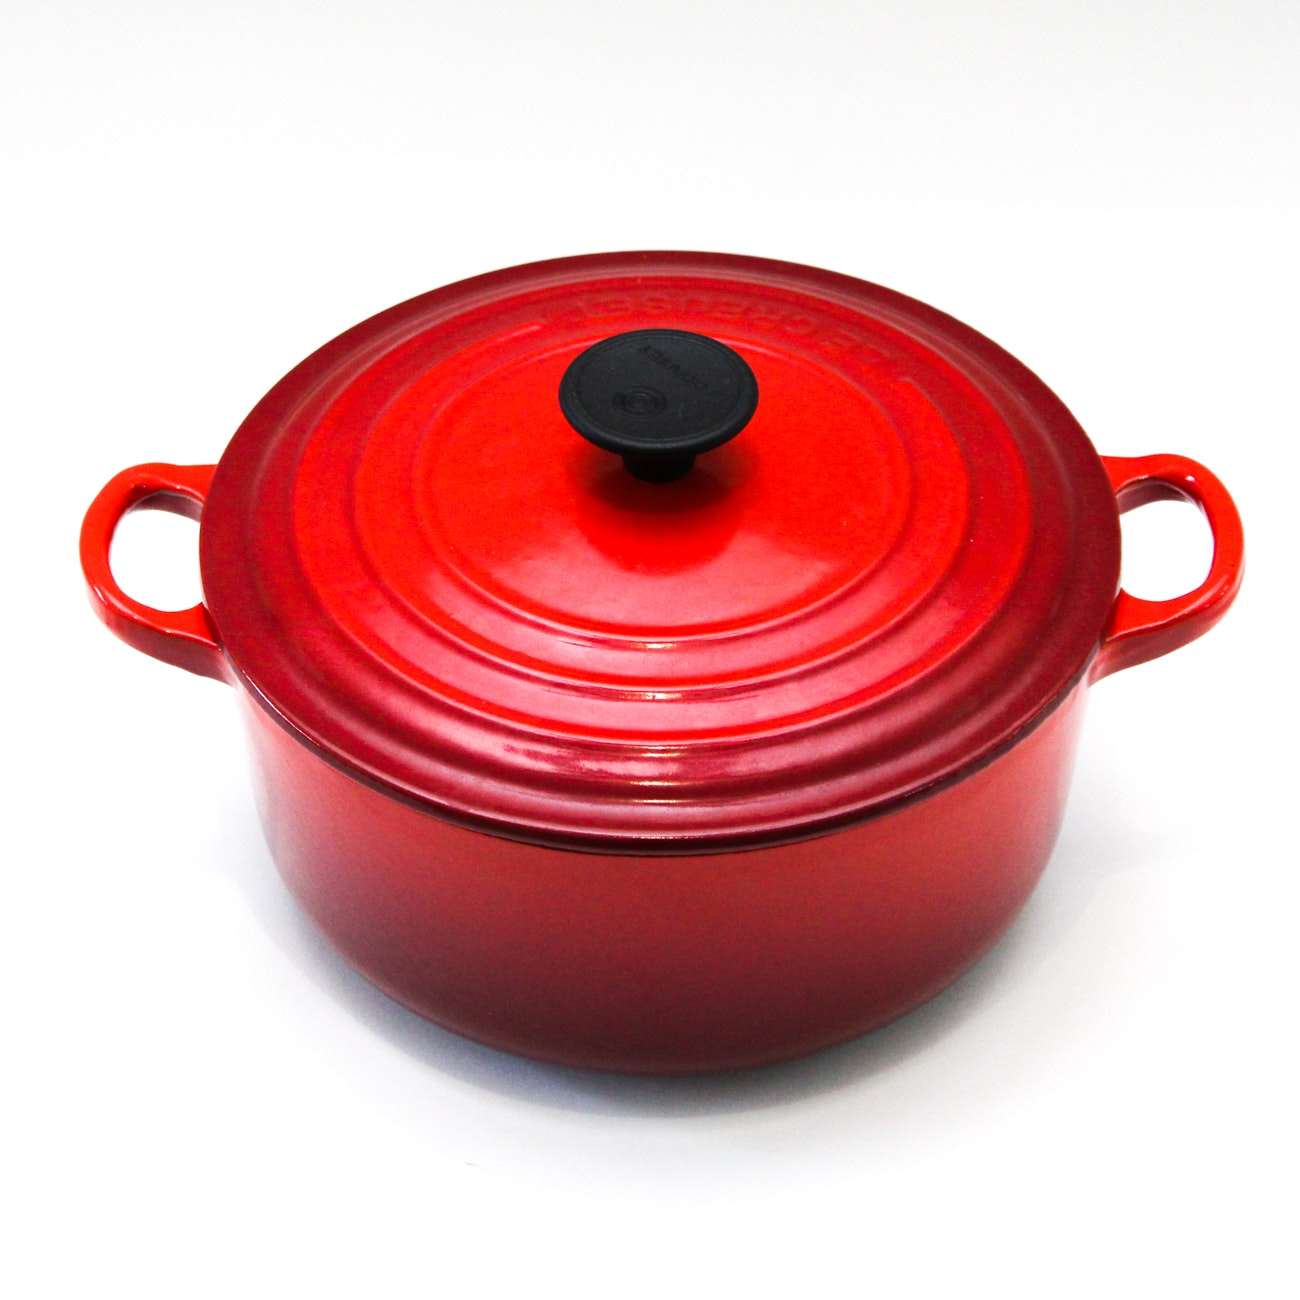 Le Creuset Enameled Dutch Oven in Red